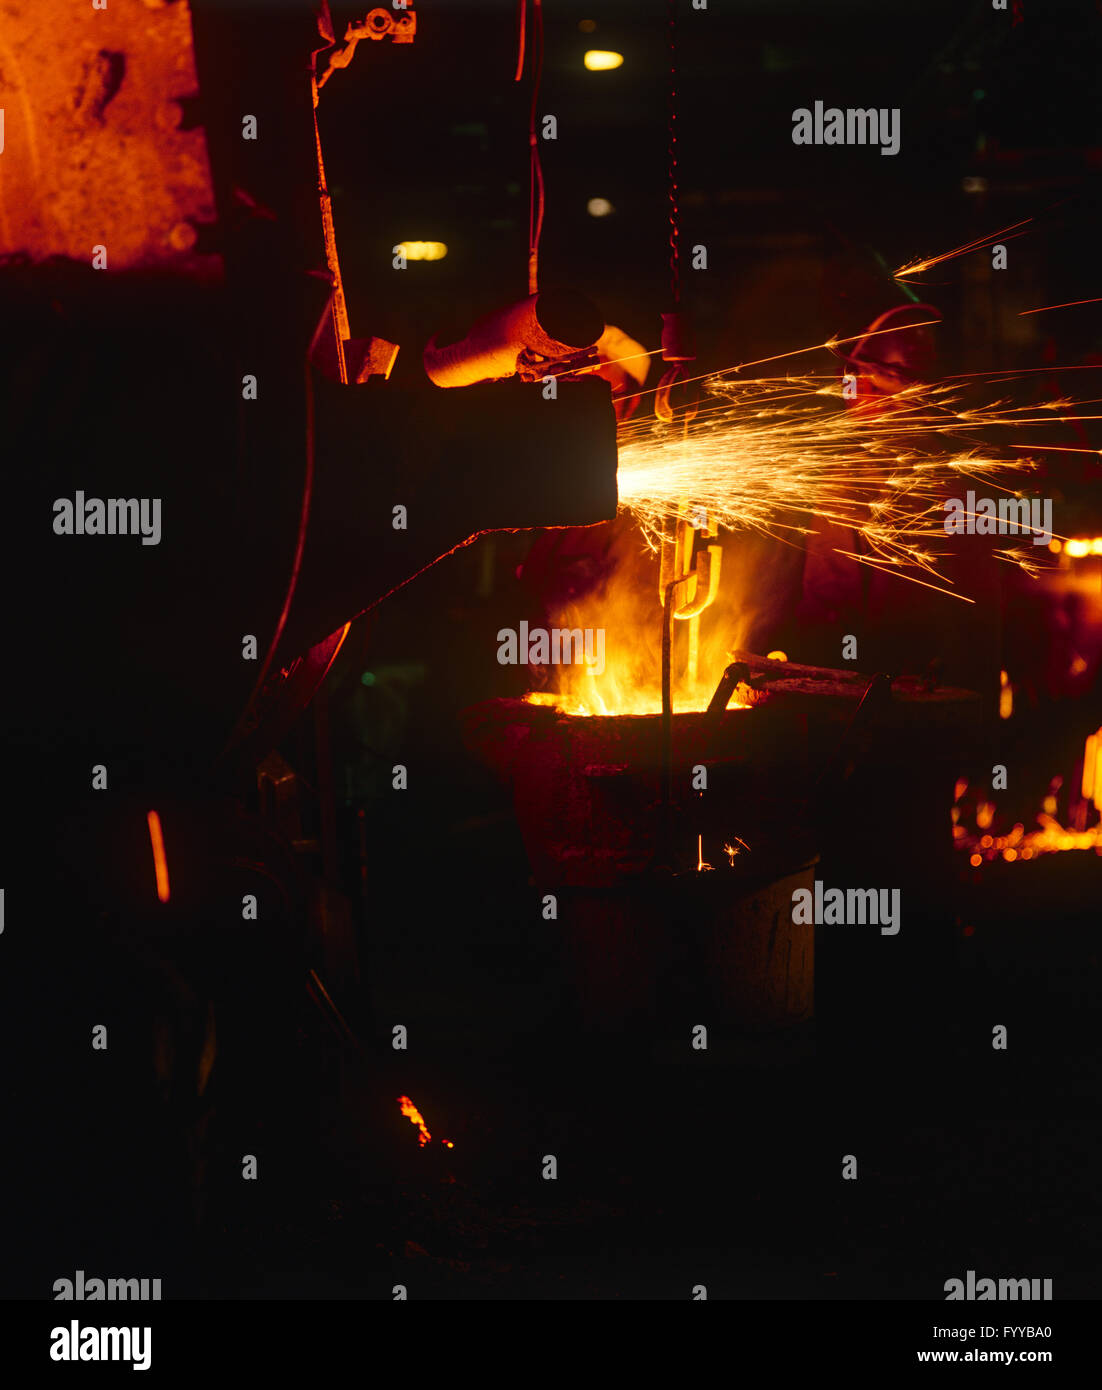 orange sparks from machinery, indoors. - Stock Image